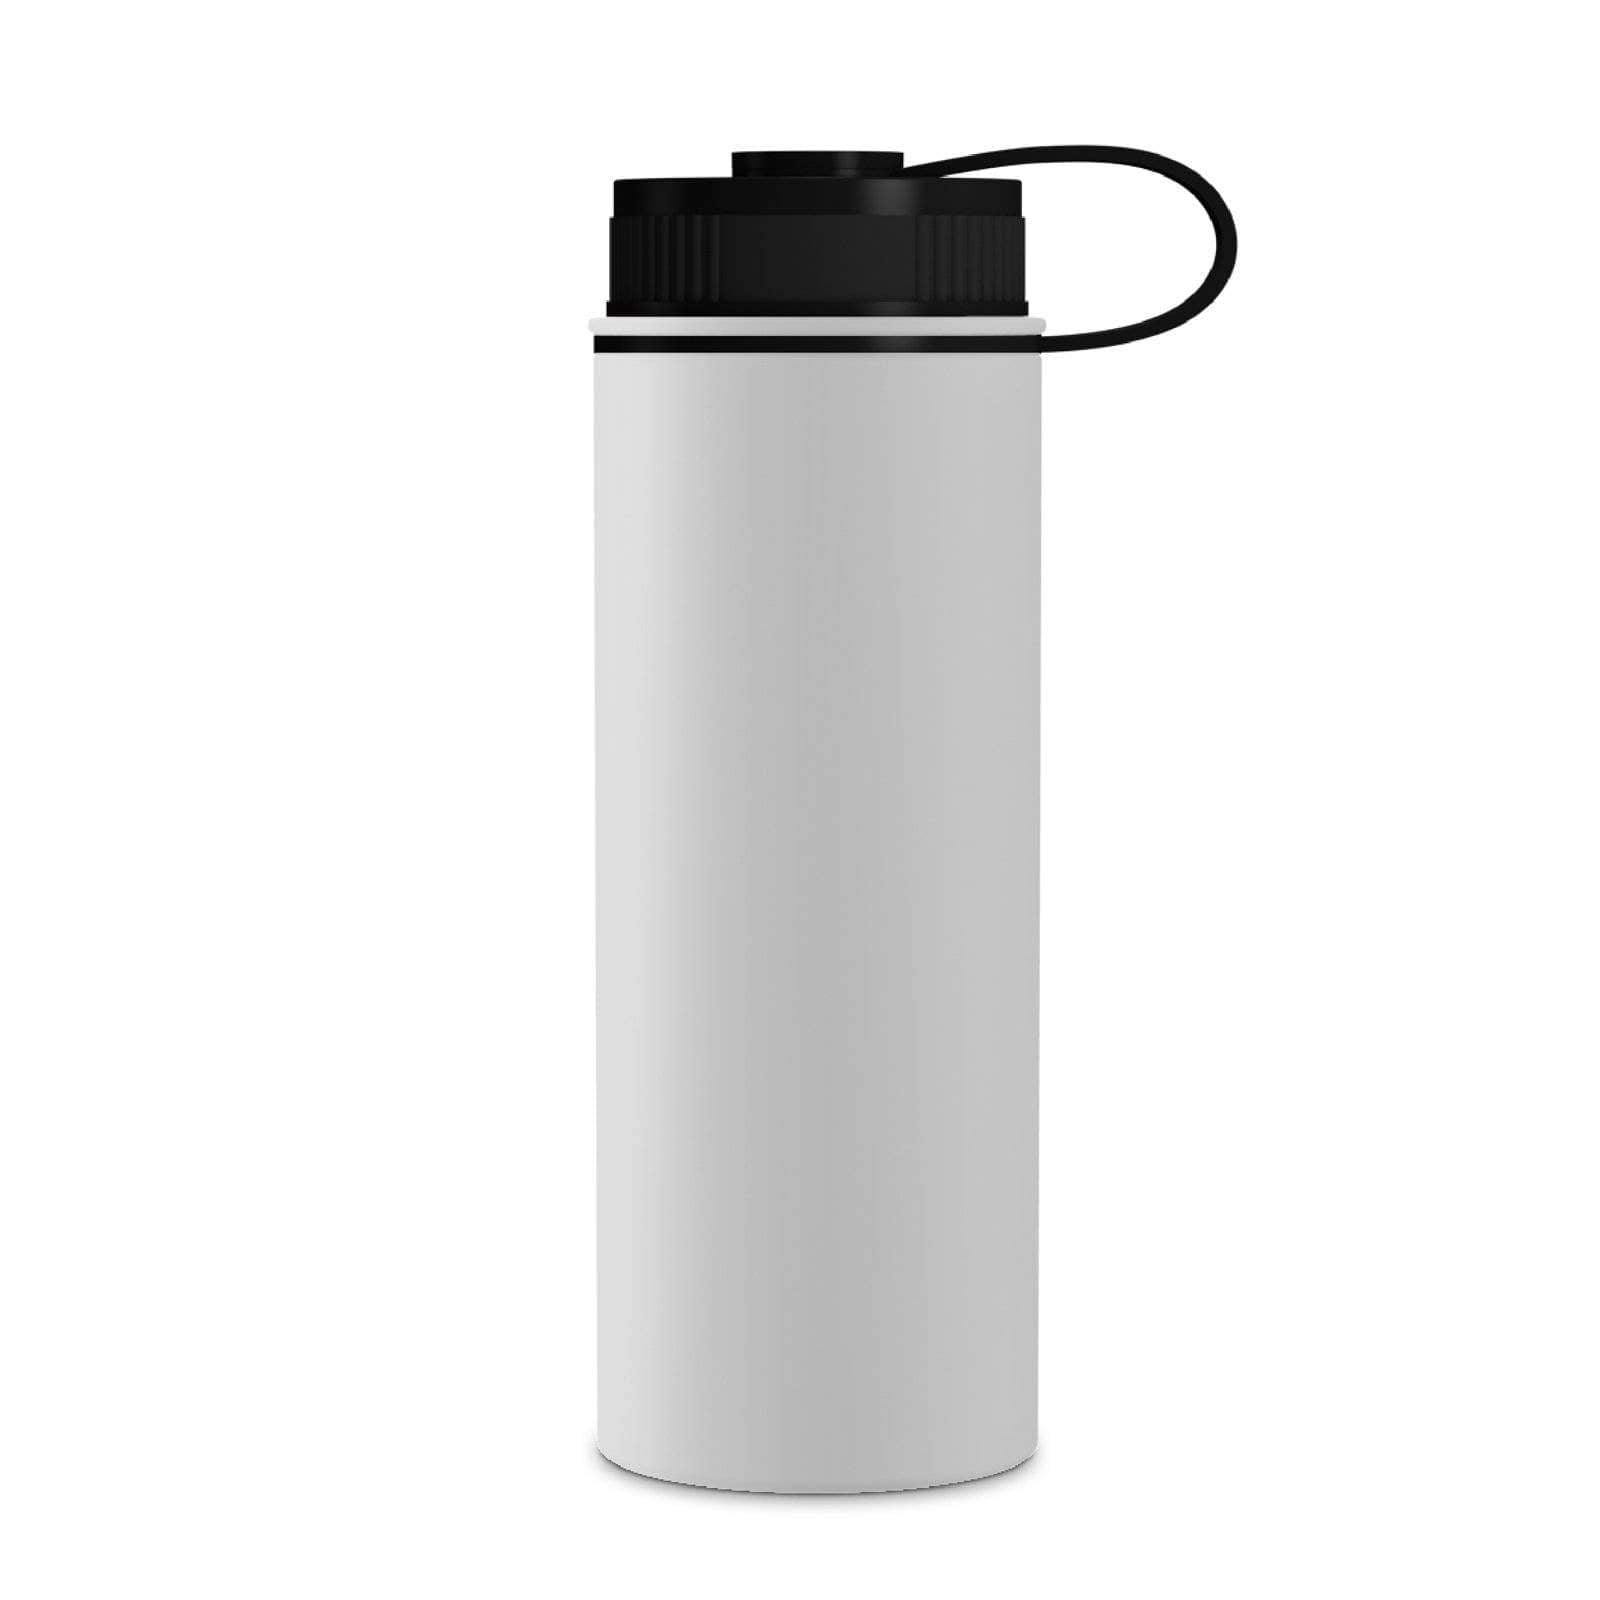 Geo Bottles White 18oz Double Wall Vacuum Insulated Flask, Wide Mouth